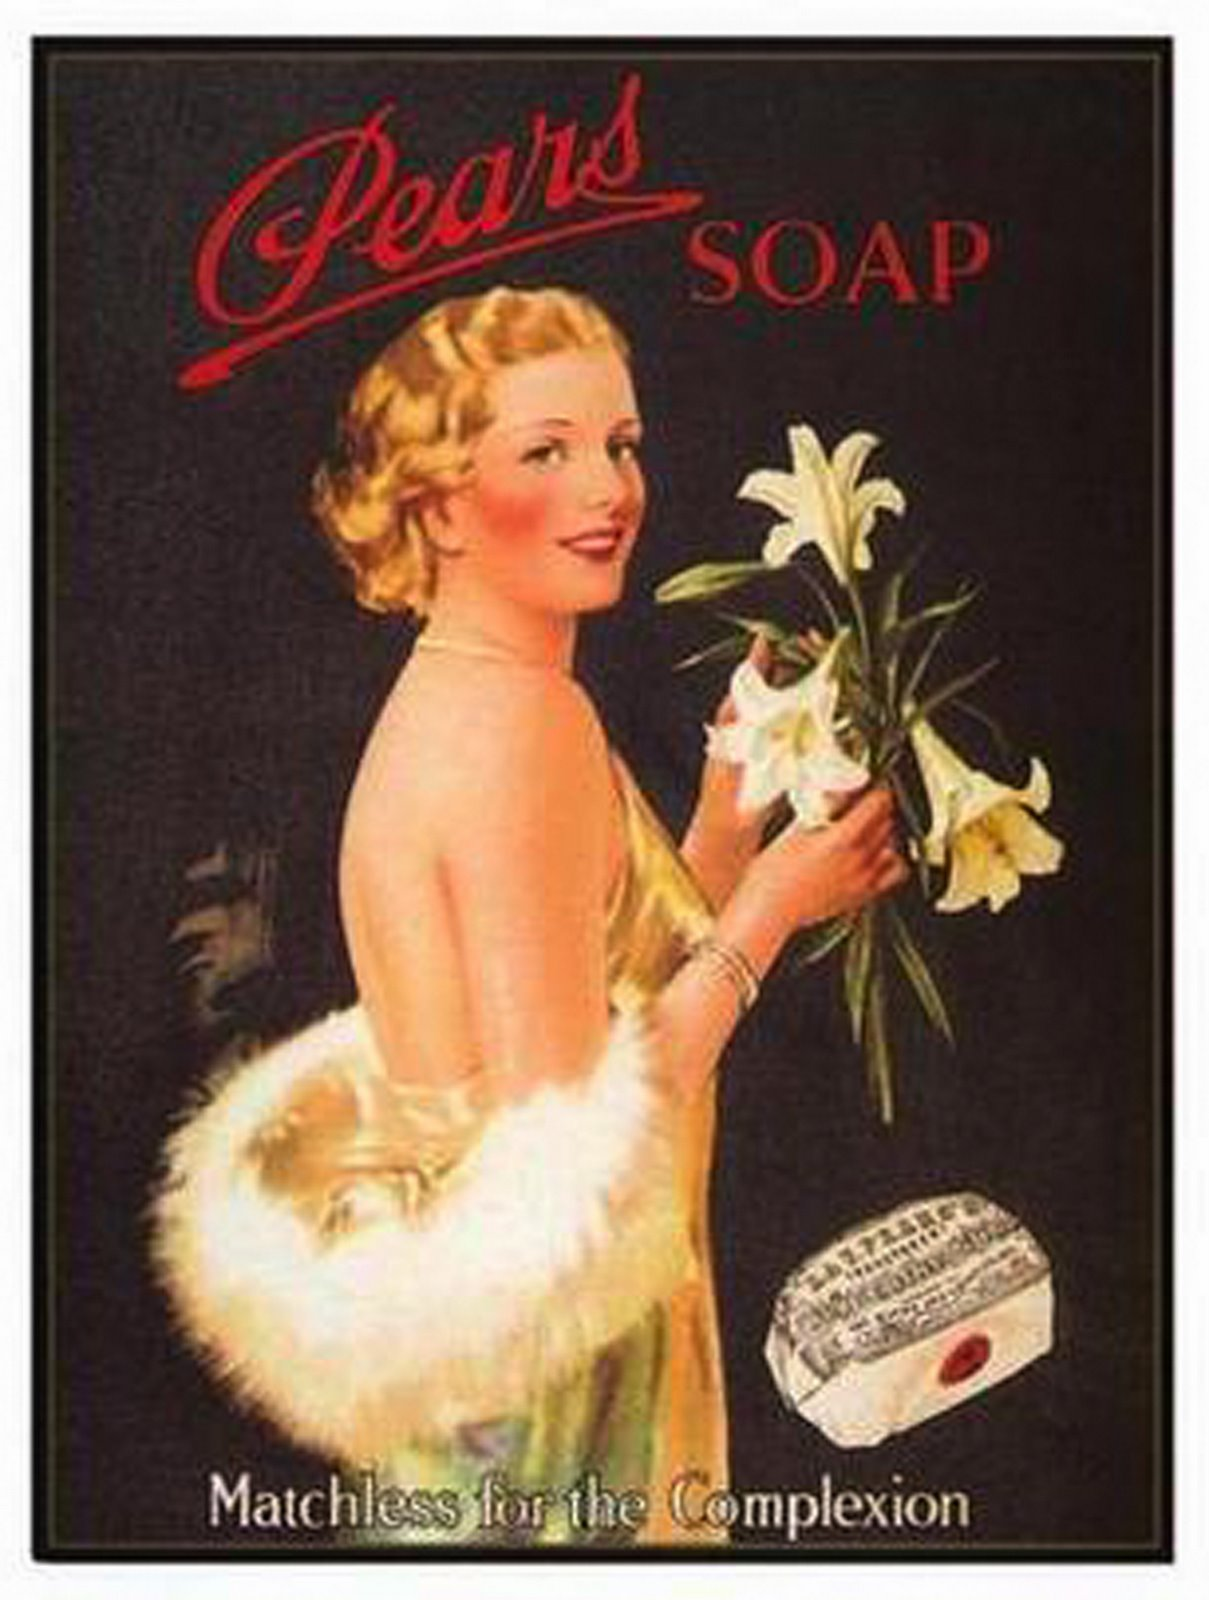 1000+ images about Vintage Advertisement Posters on Pinterest.